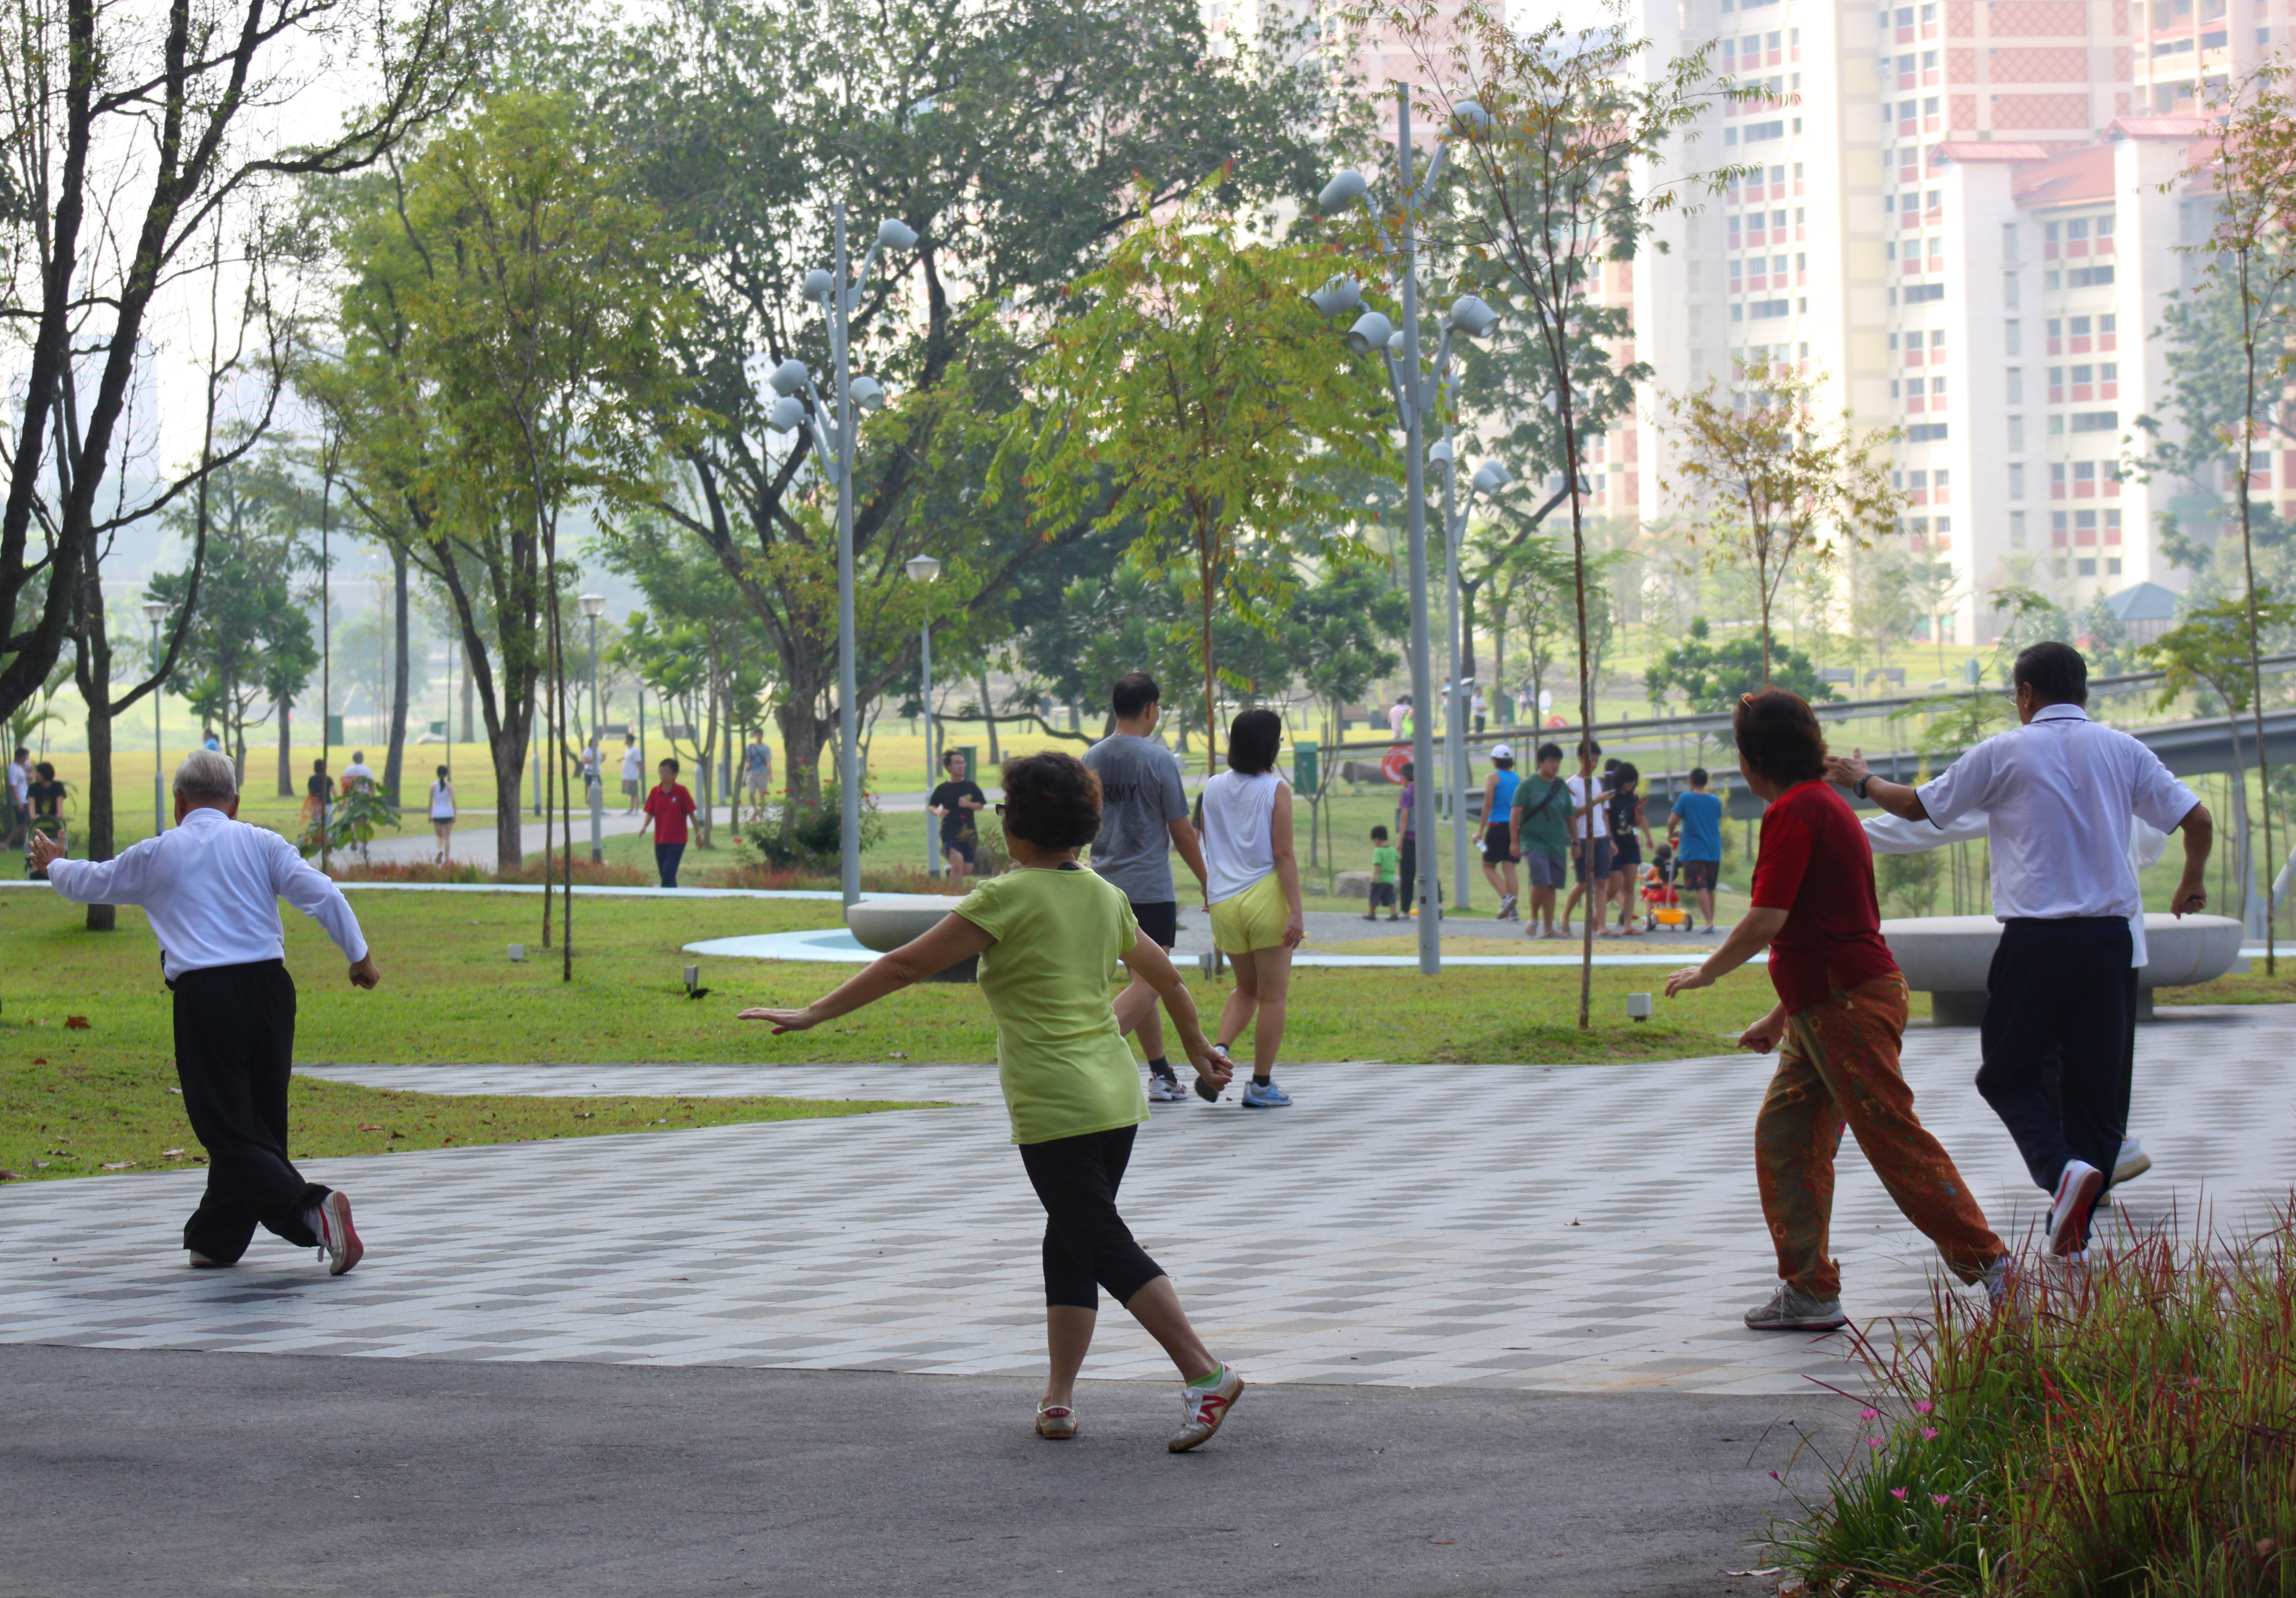 Men and women exercising in a park